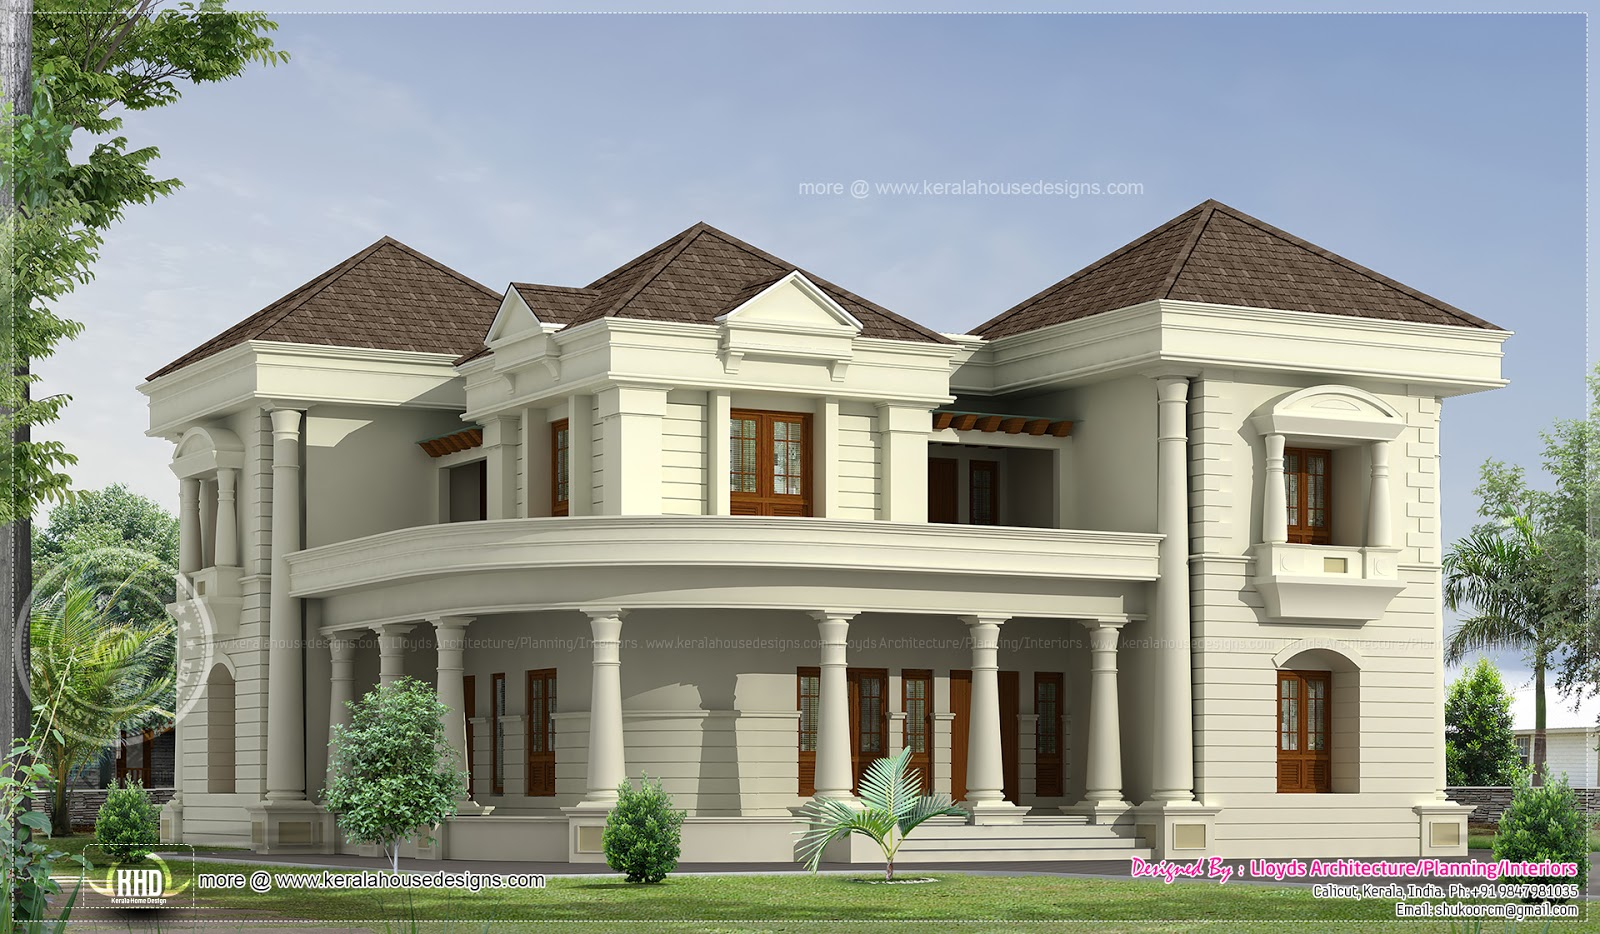 Bungalow House Designs Modern House Design in Philippines